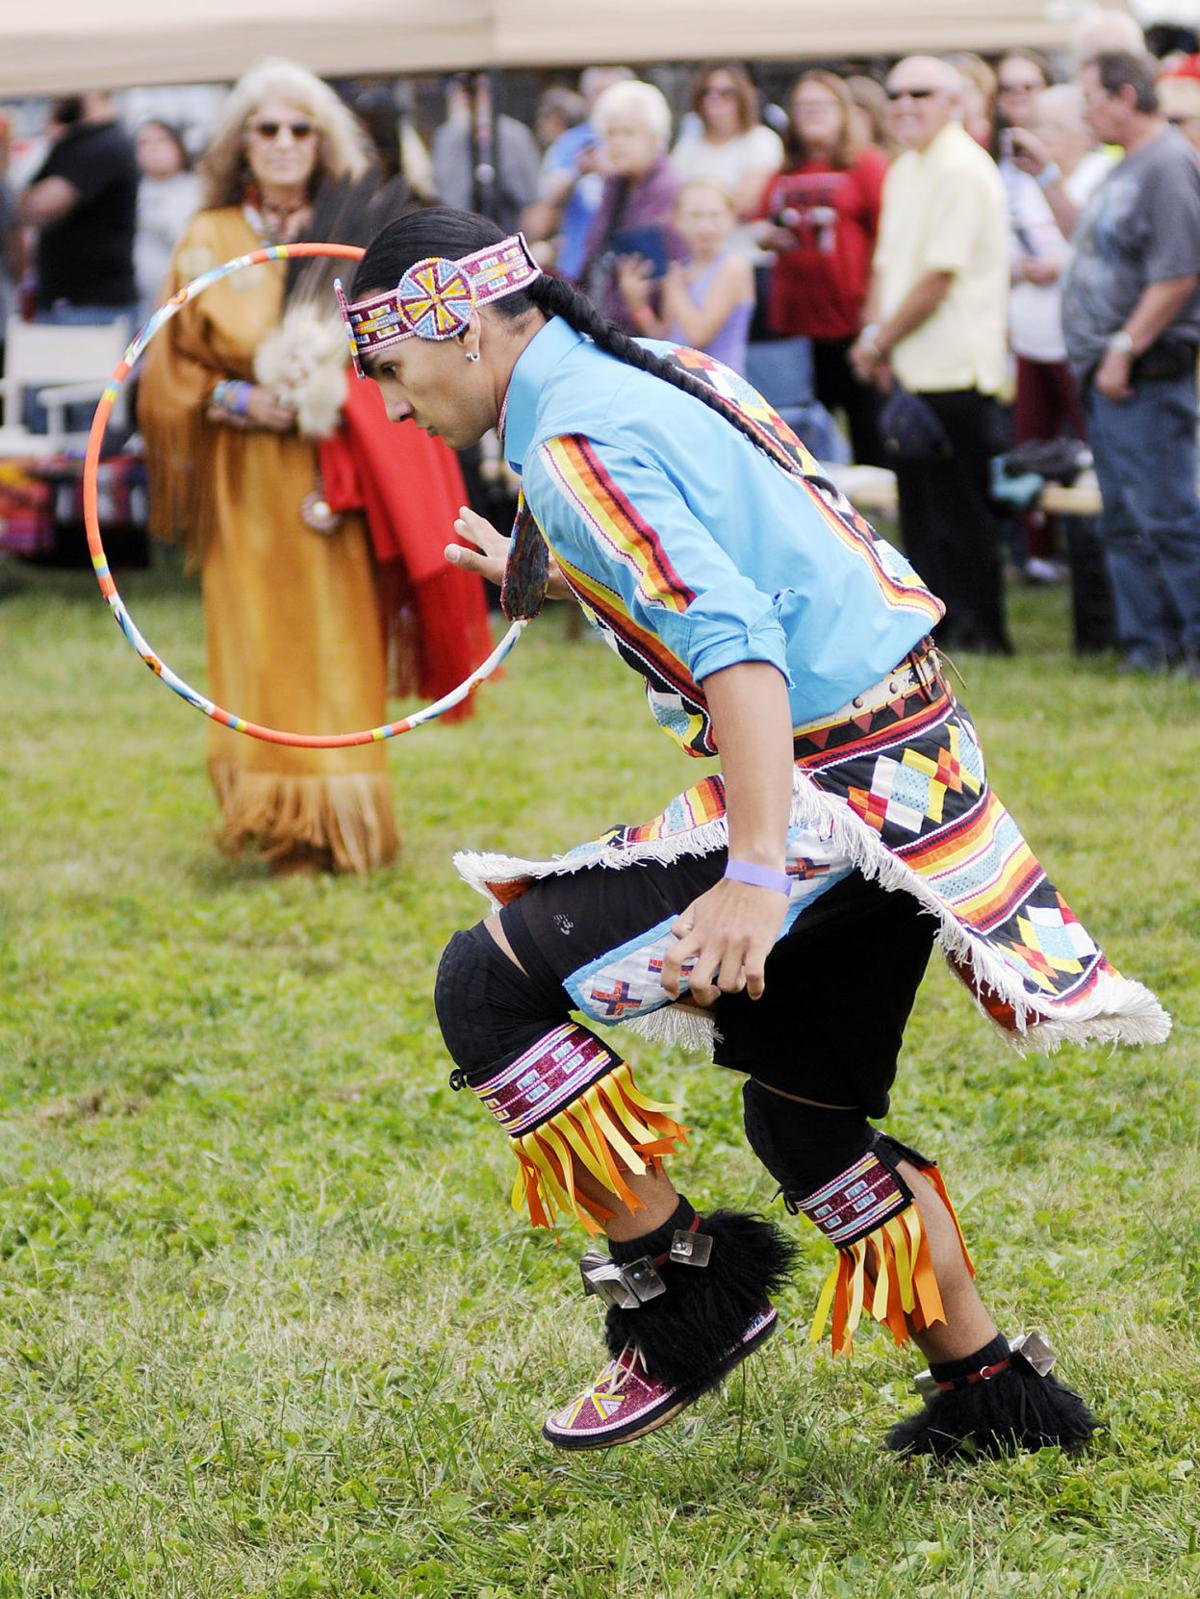 Visitors share in history, heritage at Andersontown Pow Wow